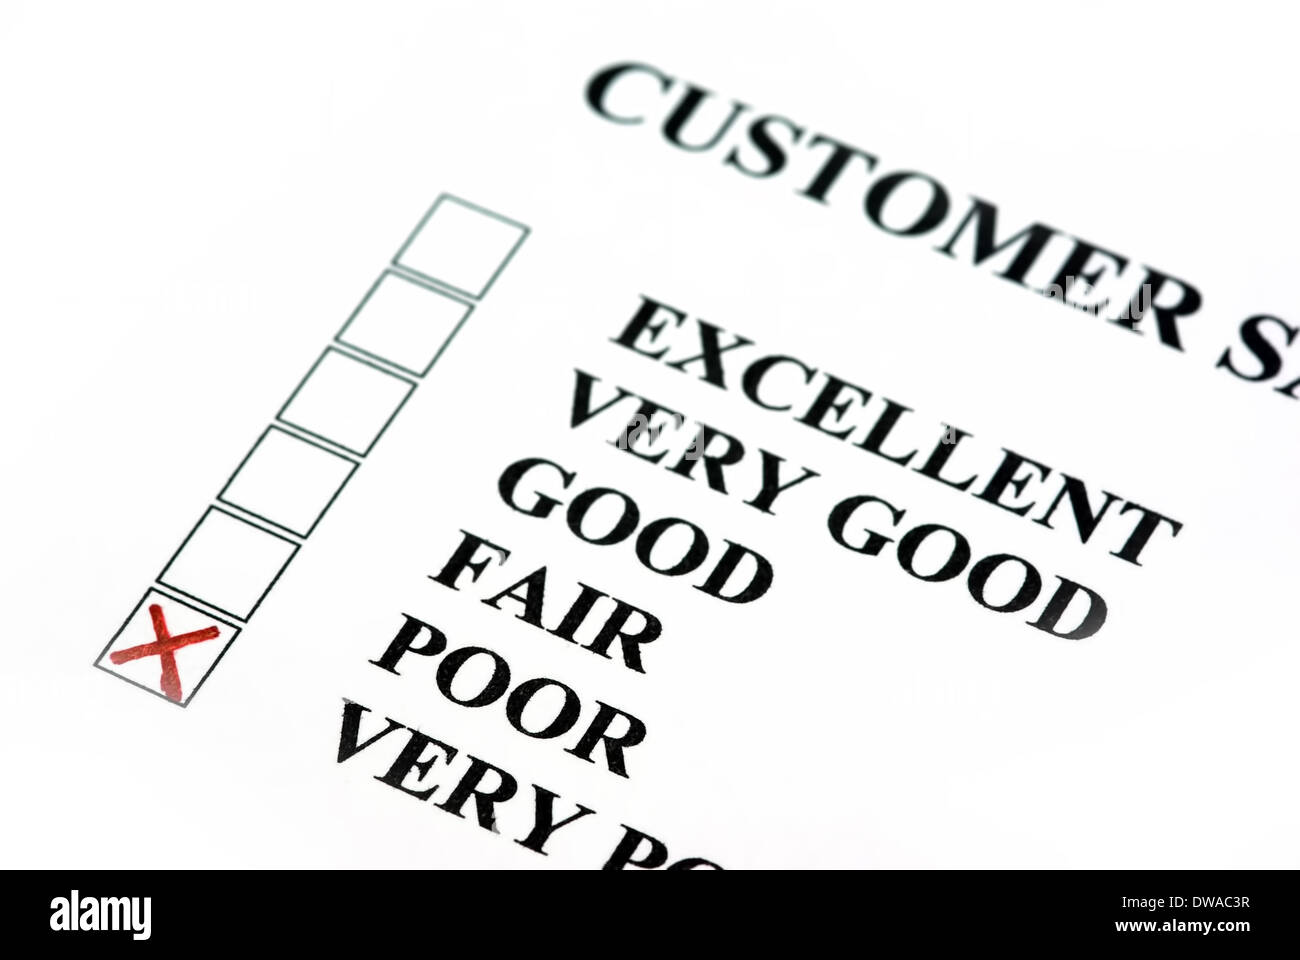 Customer survey with bad results. - Stock Image